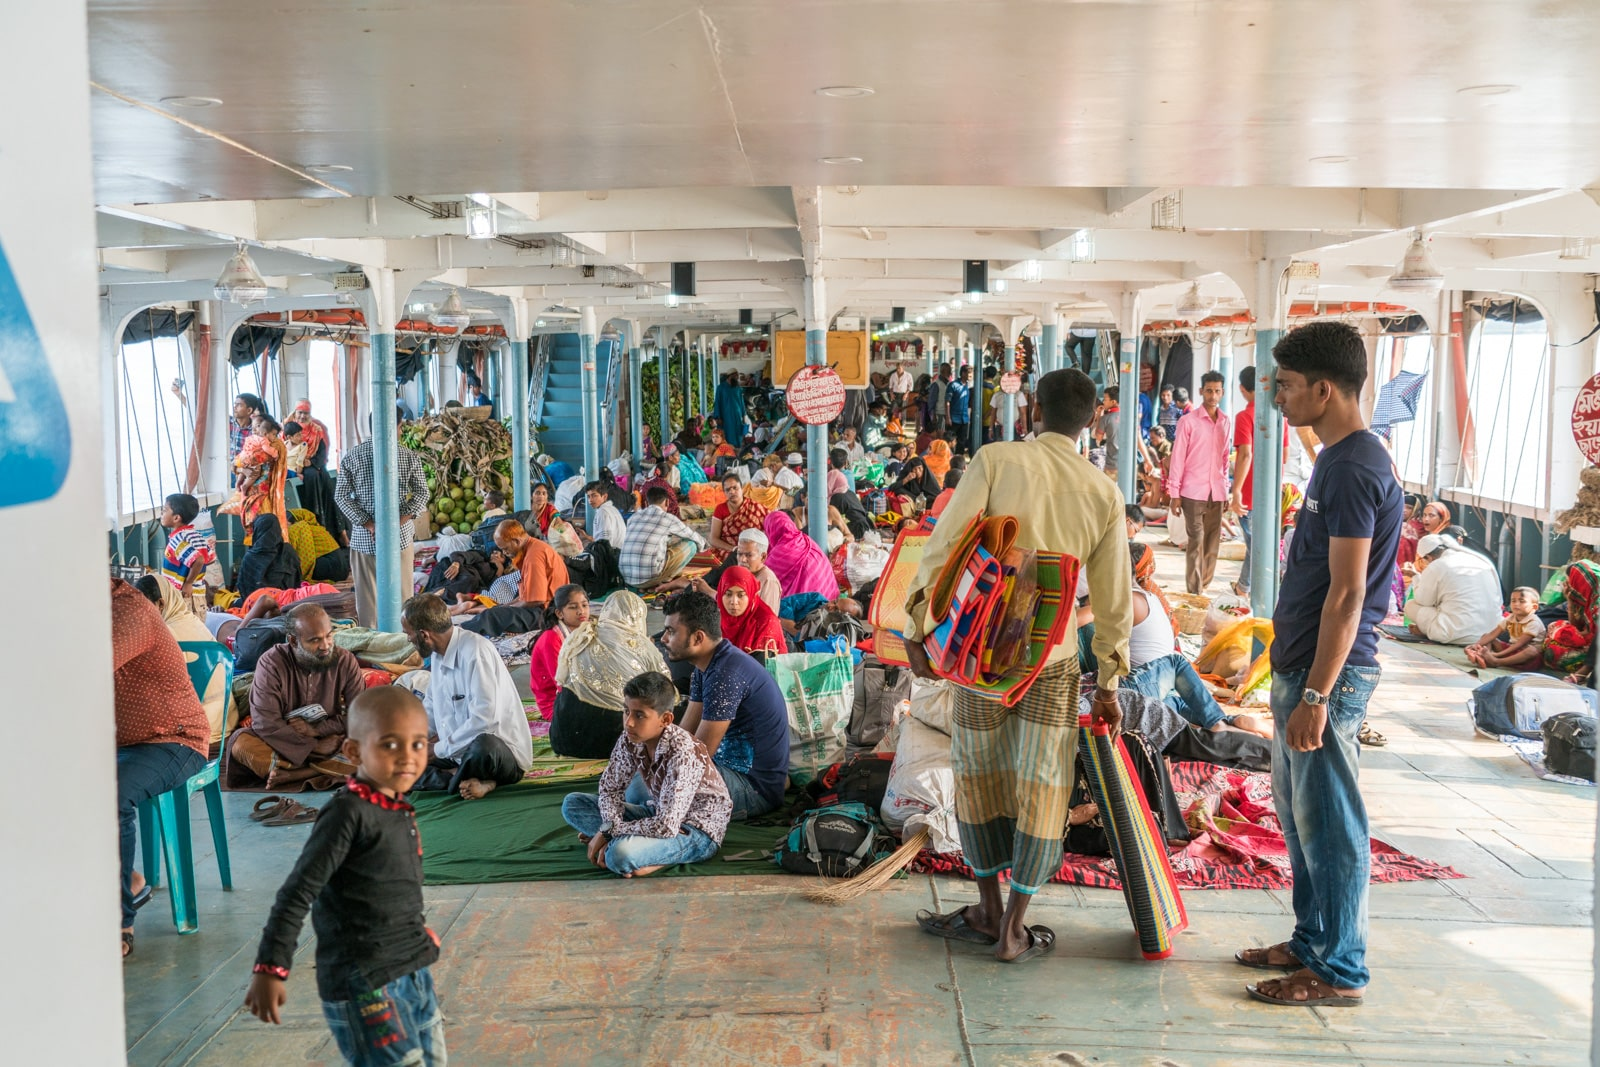 How to get a launch boat from Khulna to Dhaka via Hularhat - Floor area of launch - Lost With Purpose travel blog